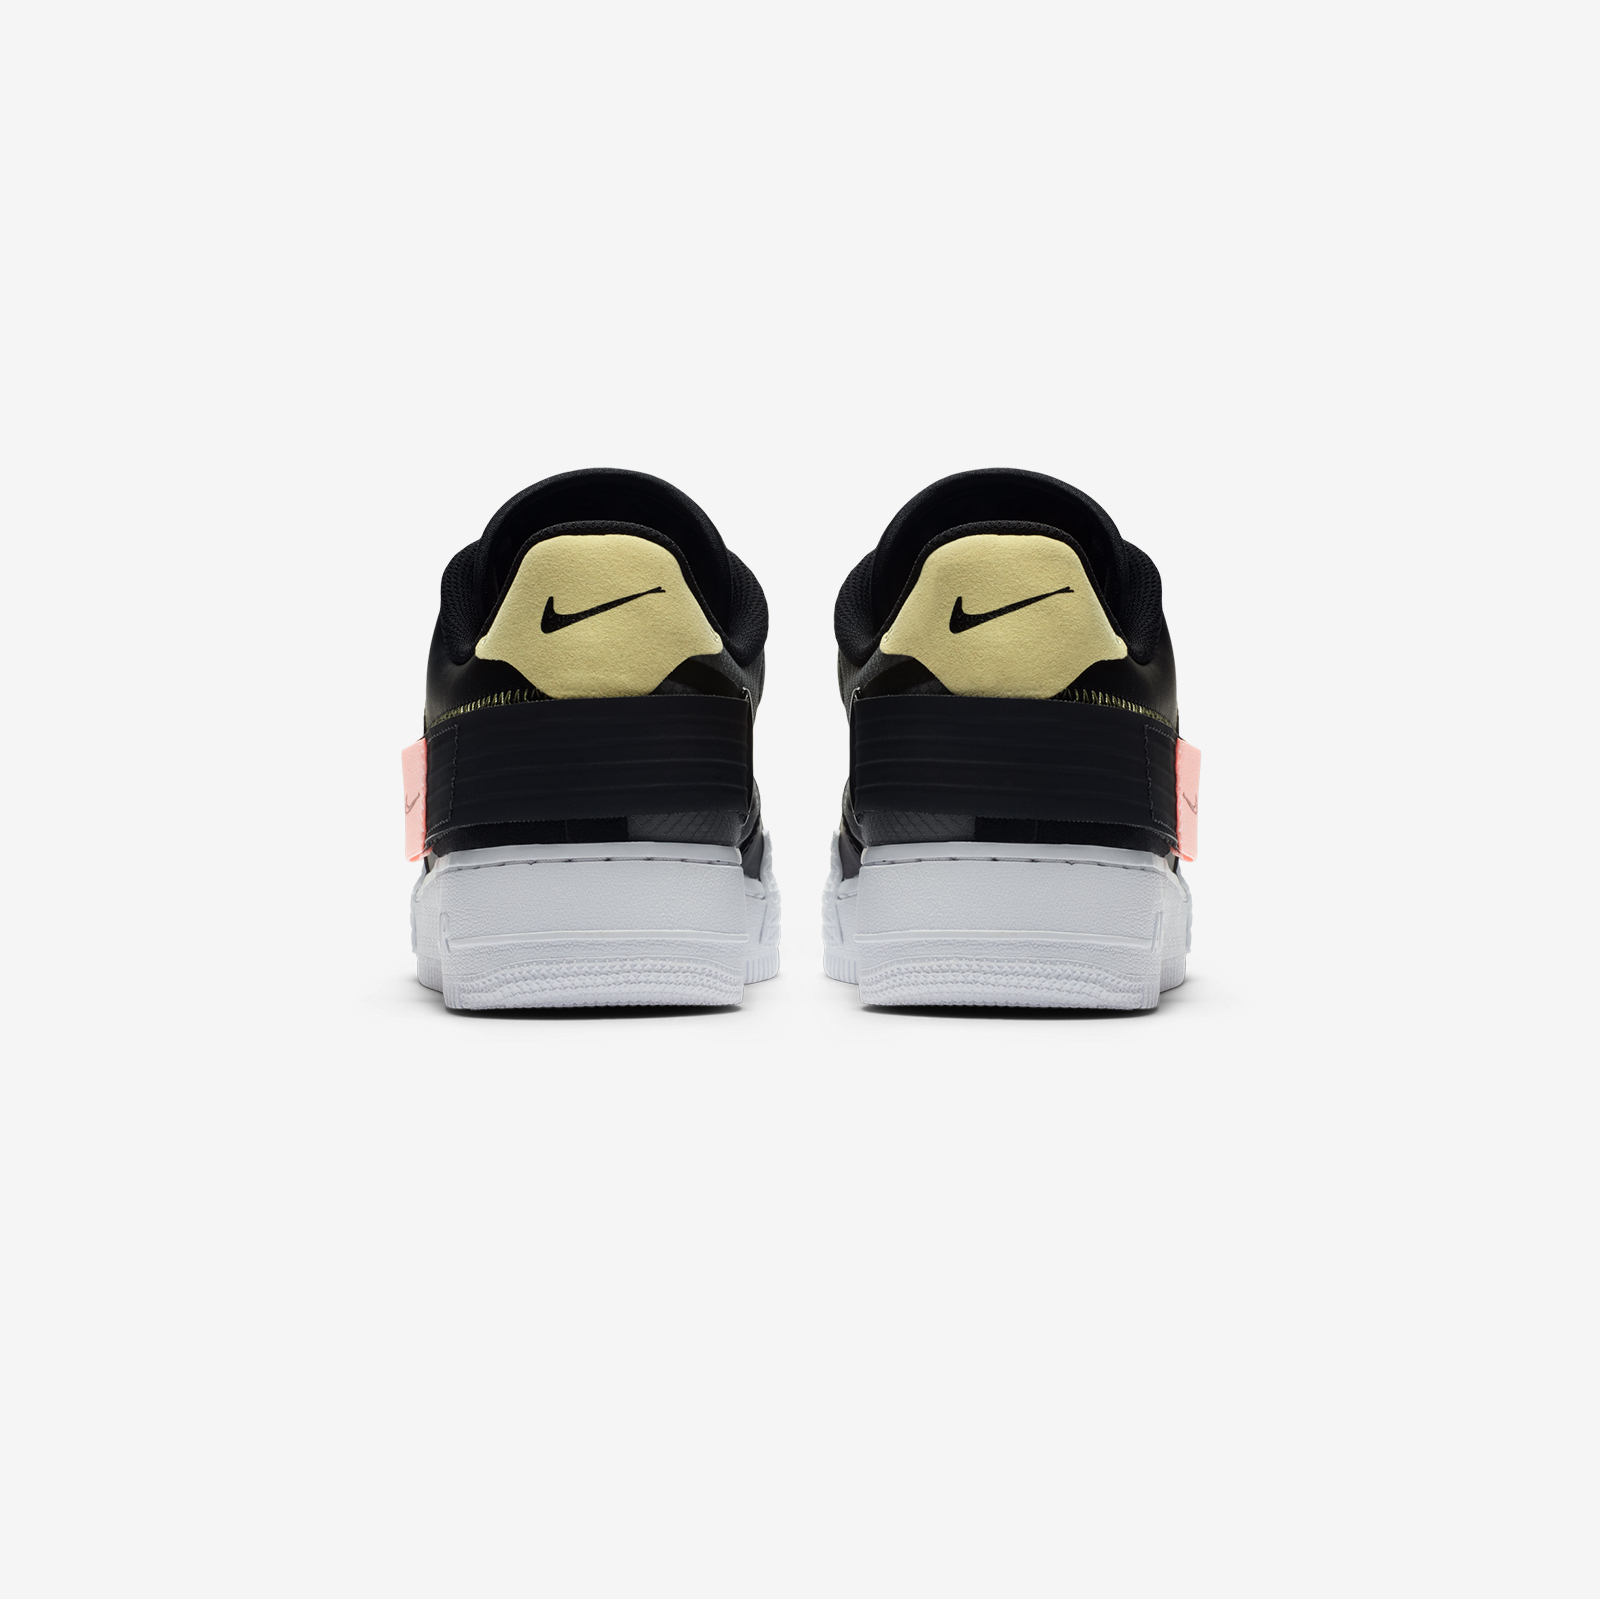 CI0054 001 Nike Air Force 1 Type Black 4